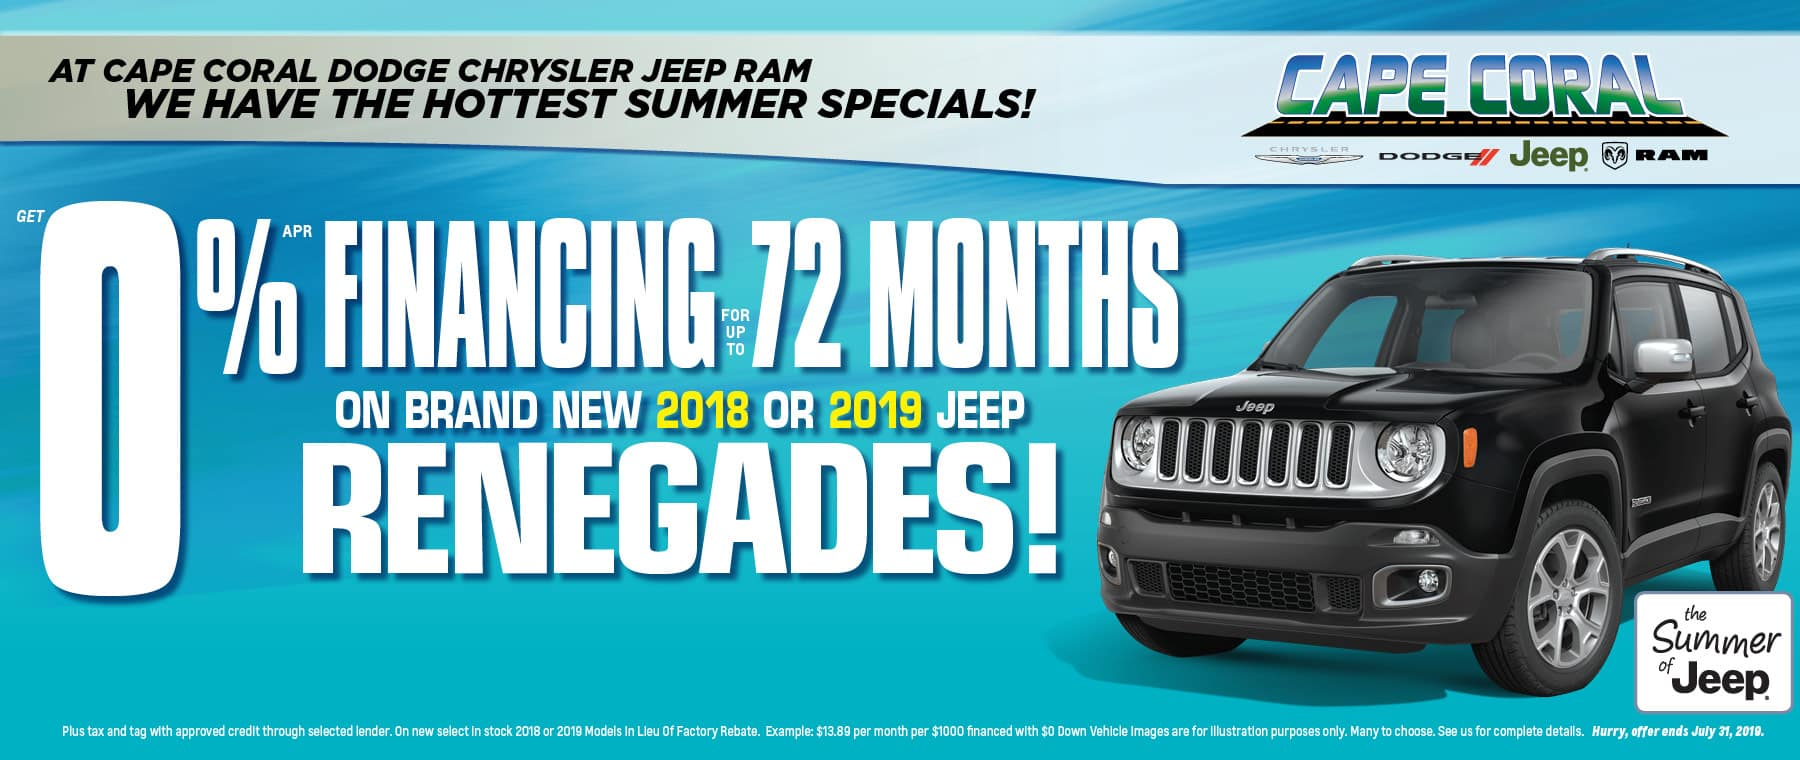 Just Announced! 72% Financing Available On Jeep Renegades!